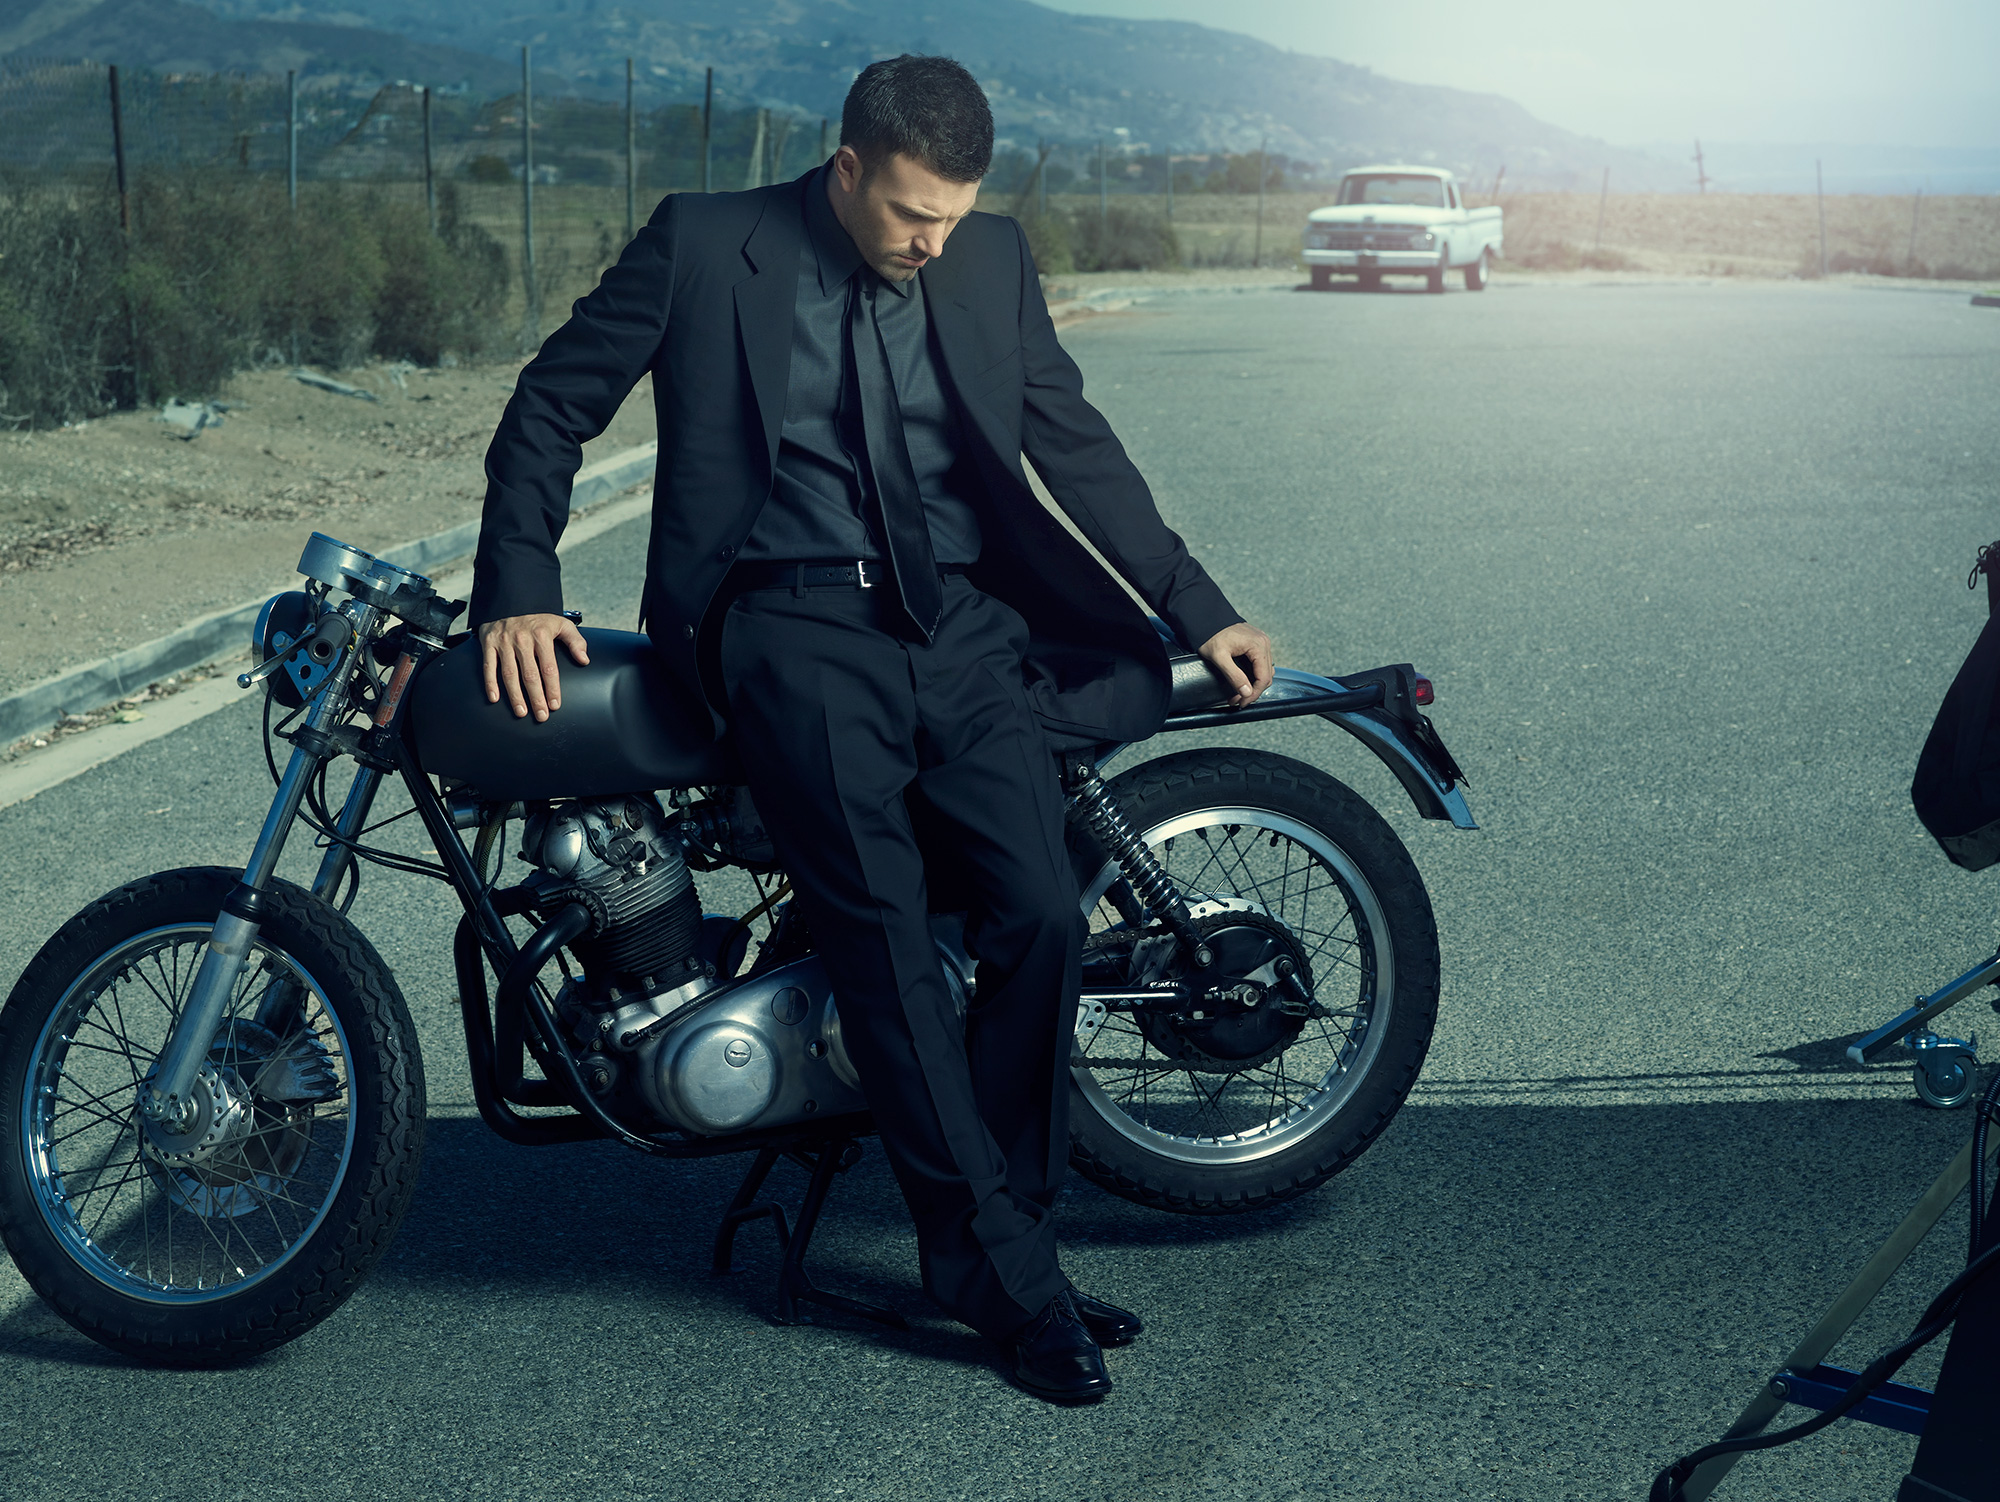 Ben-Affleck-Motorcycle-by-Robert-Ascroft.jpg